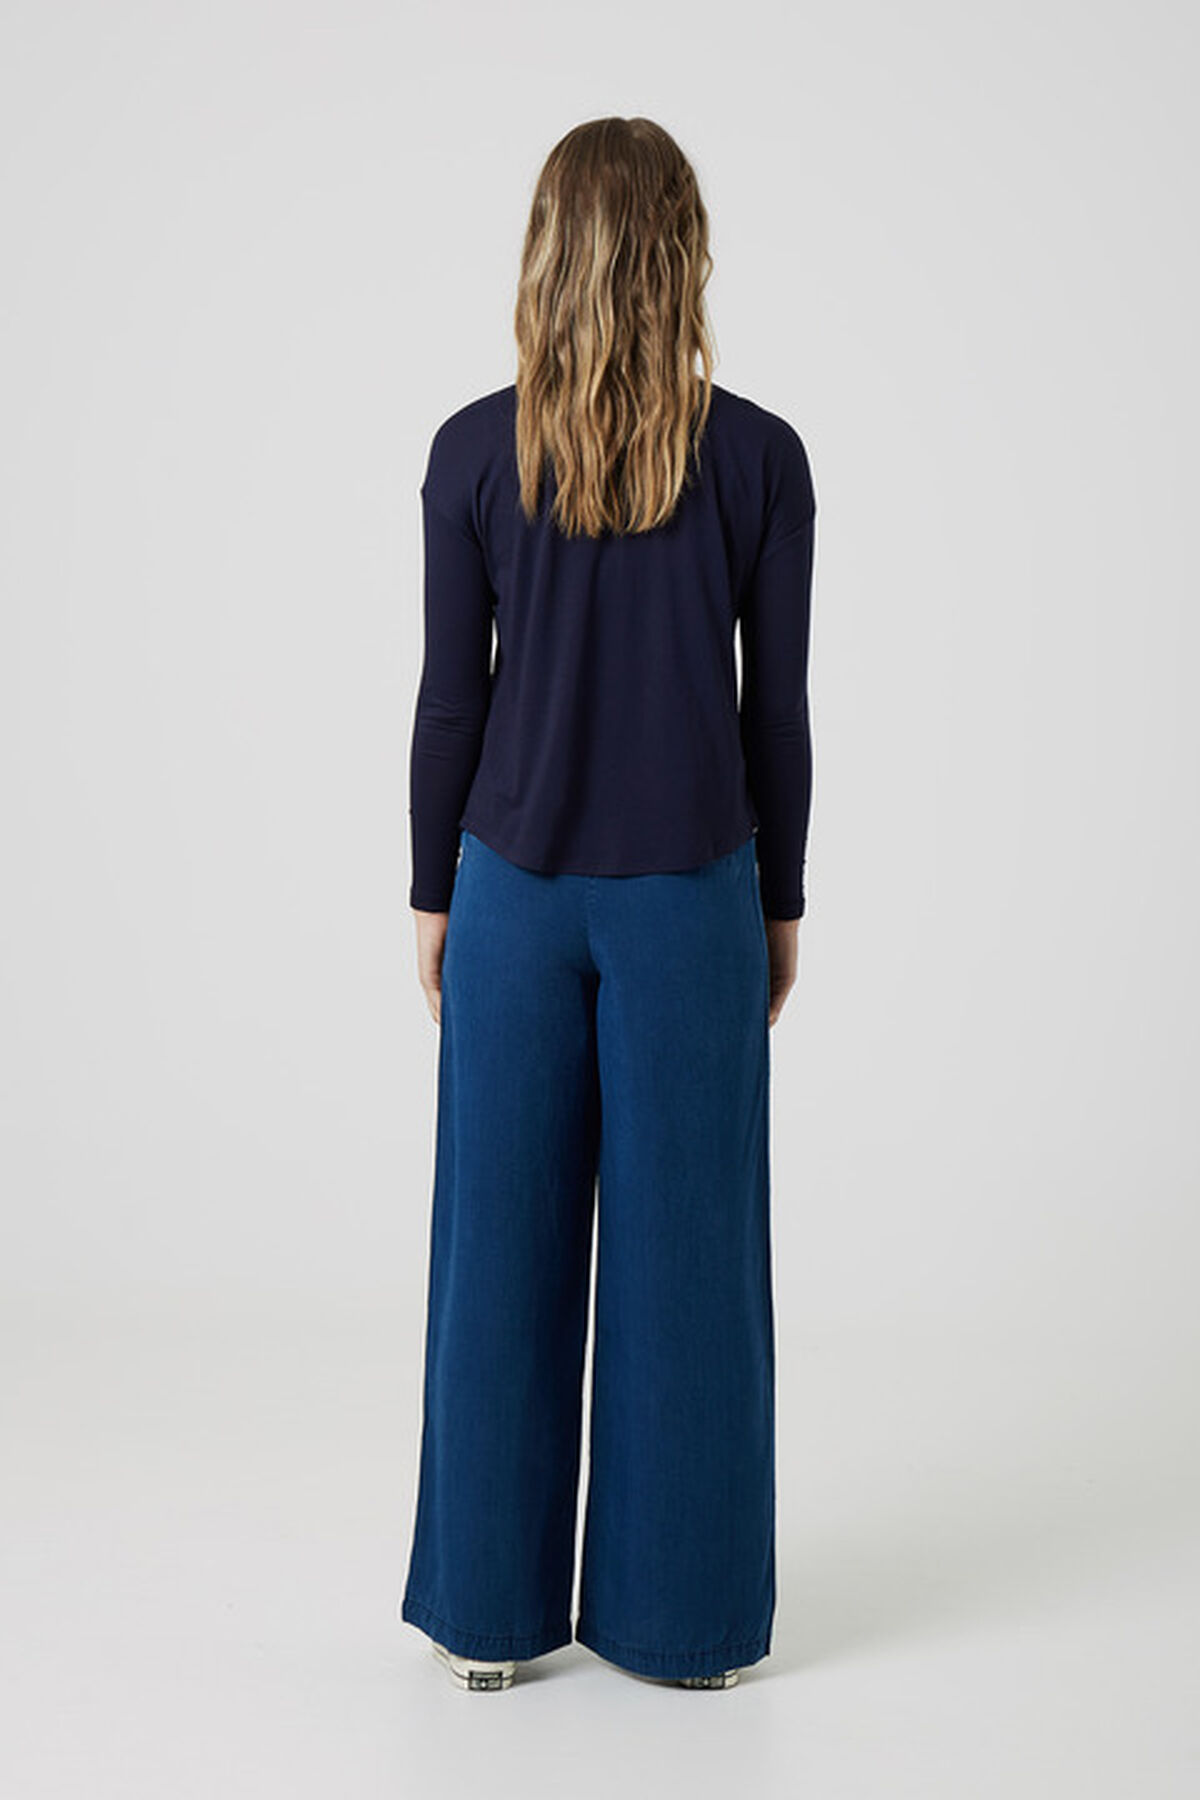 PALAZZO POCKET PANT IT